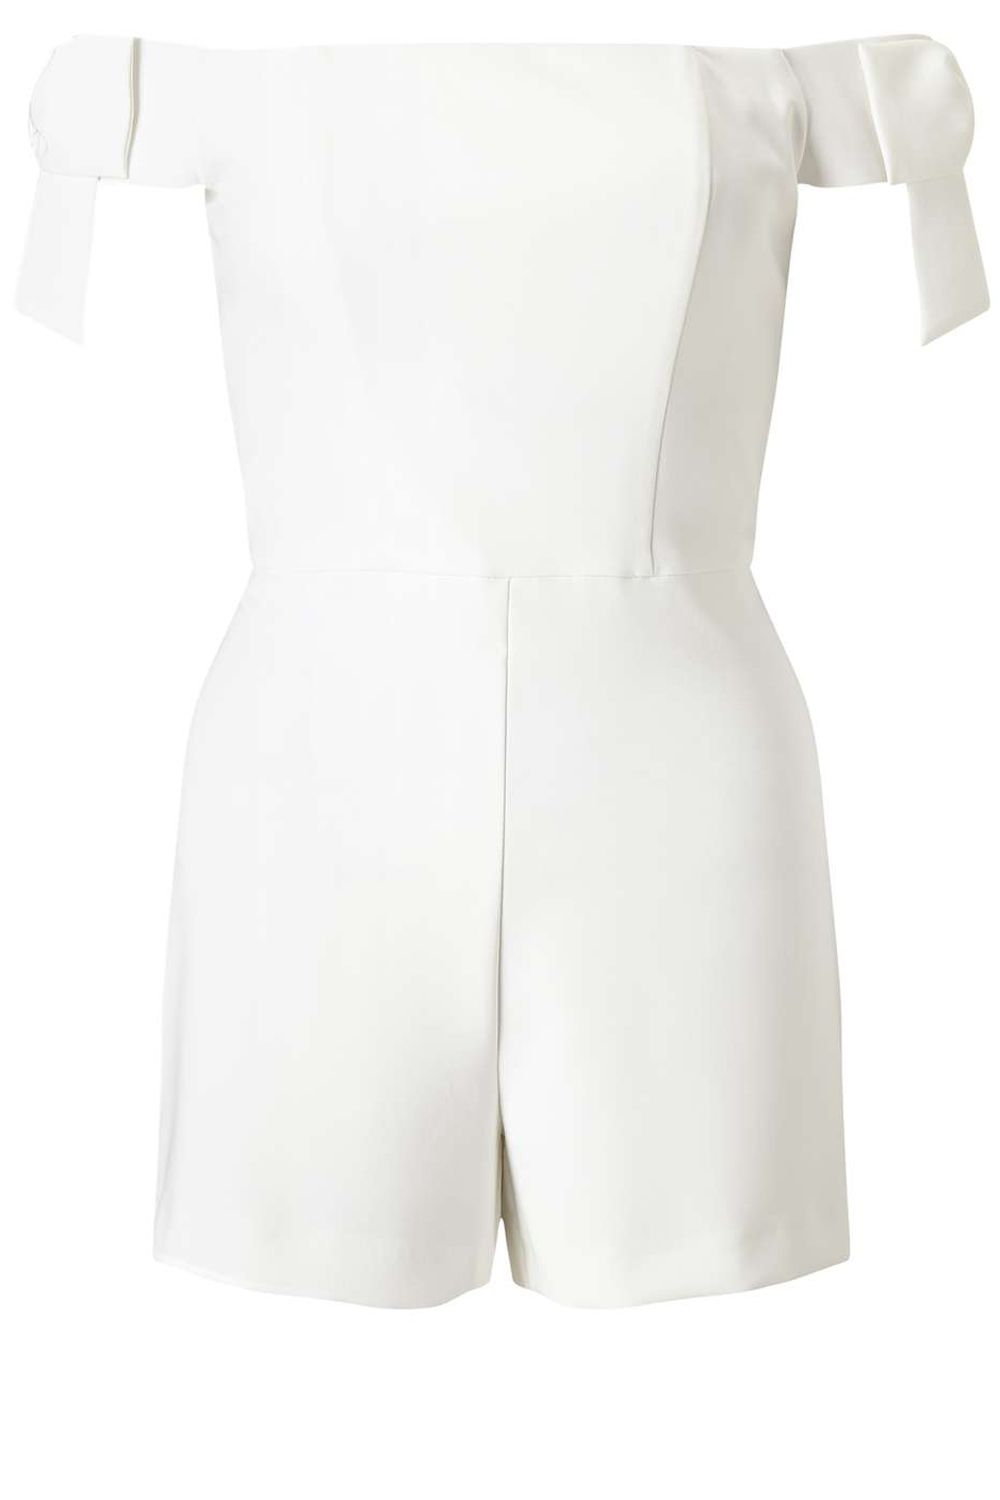 """<p><strong>Miss Selfridge</strong> romper, $85, <a href=""""http://us.missselfridge.com/webapp/wcs/stores/servlet/ProductDisplay?searchTermScope=3&searchType=ALL&viewAllFlag=false&beginIndex=1&langId=-1&productId=25072513&pageSize=20&defaultGridLayout=3&CE3_ENDECA_PRODUCT_ROLLUP_ENABLED=N&searchTerm=MS34A09TIVR&productOnlyCount=1&catalogId=34080&productIdentifierproduct=product&geoip=search&x=25&searchTermOperator=LIKE&sort_field=Relevance&y=11&storeId=13069&qubitRefinements=siteId%3DMissSelfridgeUS"""" target=""""_blank"""">missselfridge.com</a>. </p>"""